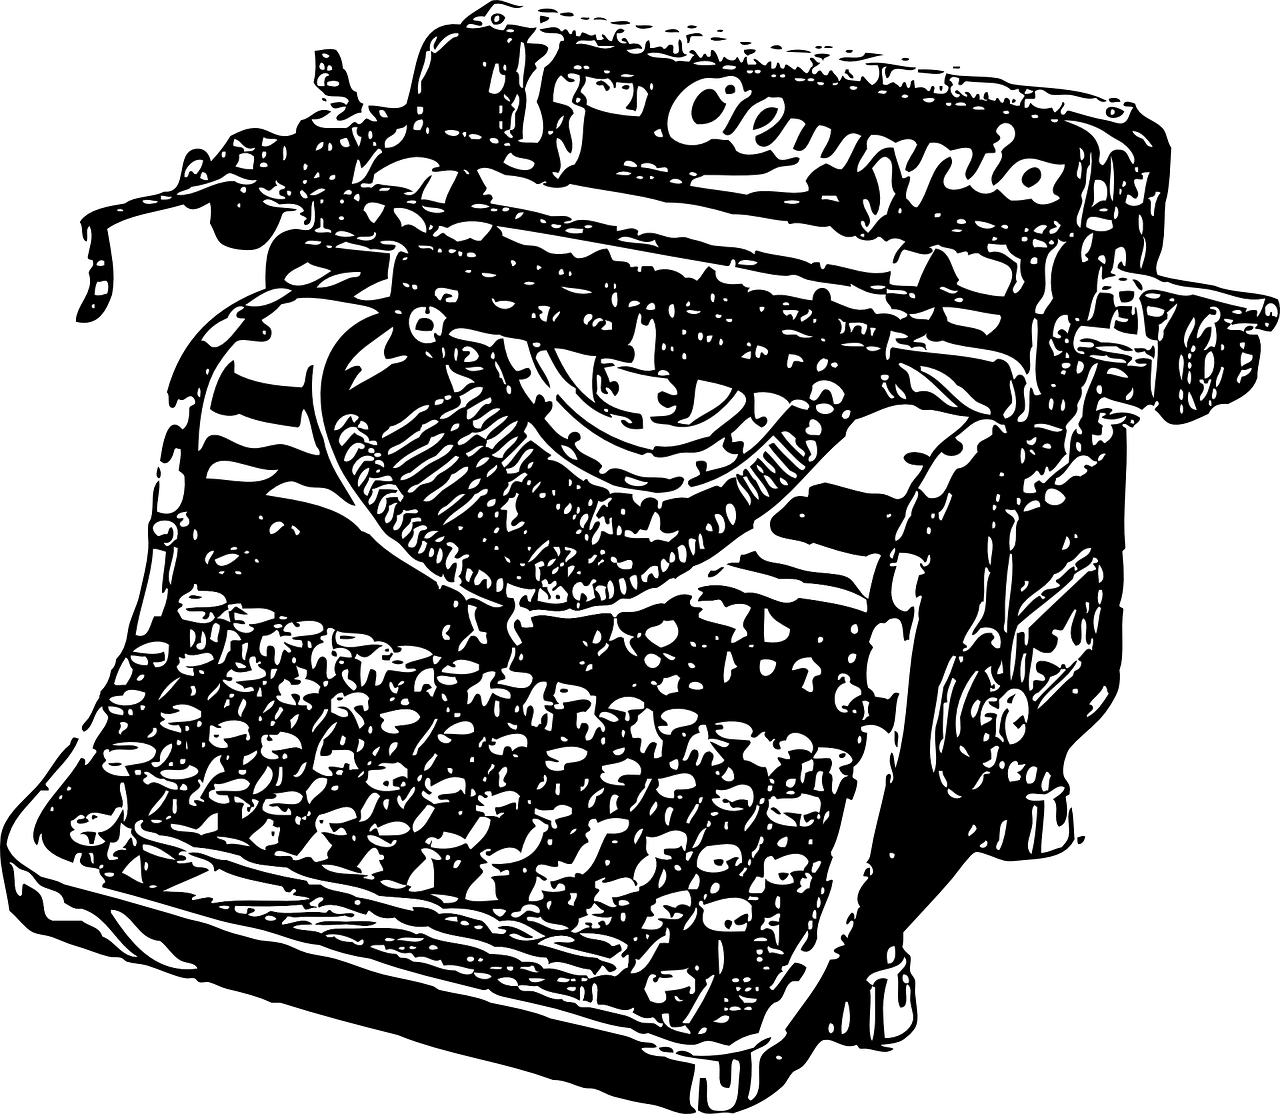 typewriter,type,writer,mechanical,old,style,office,work,vintage,antique,key,typewriting,old-fashioned,obsolete,correspondence,typescript,free vector graphics,free pictures, free photos, free images, royalty free, free illustrations